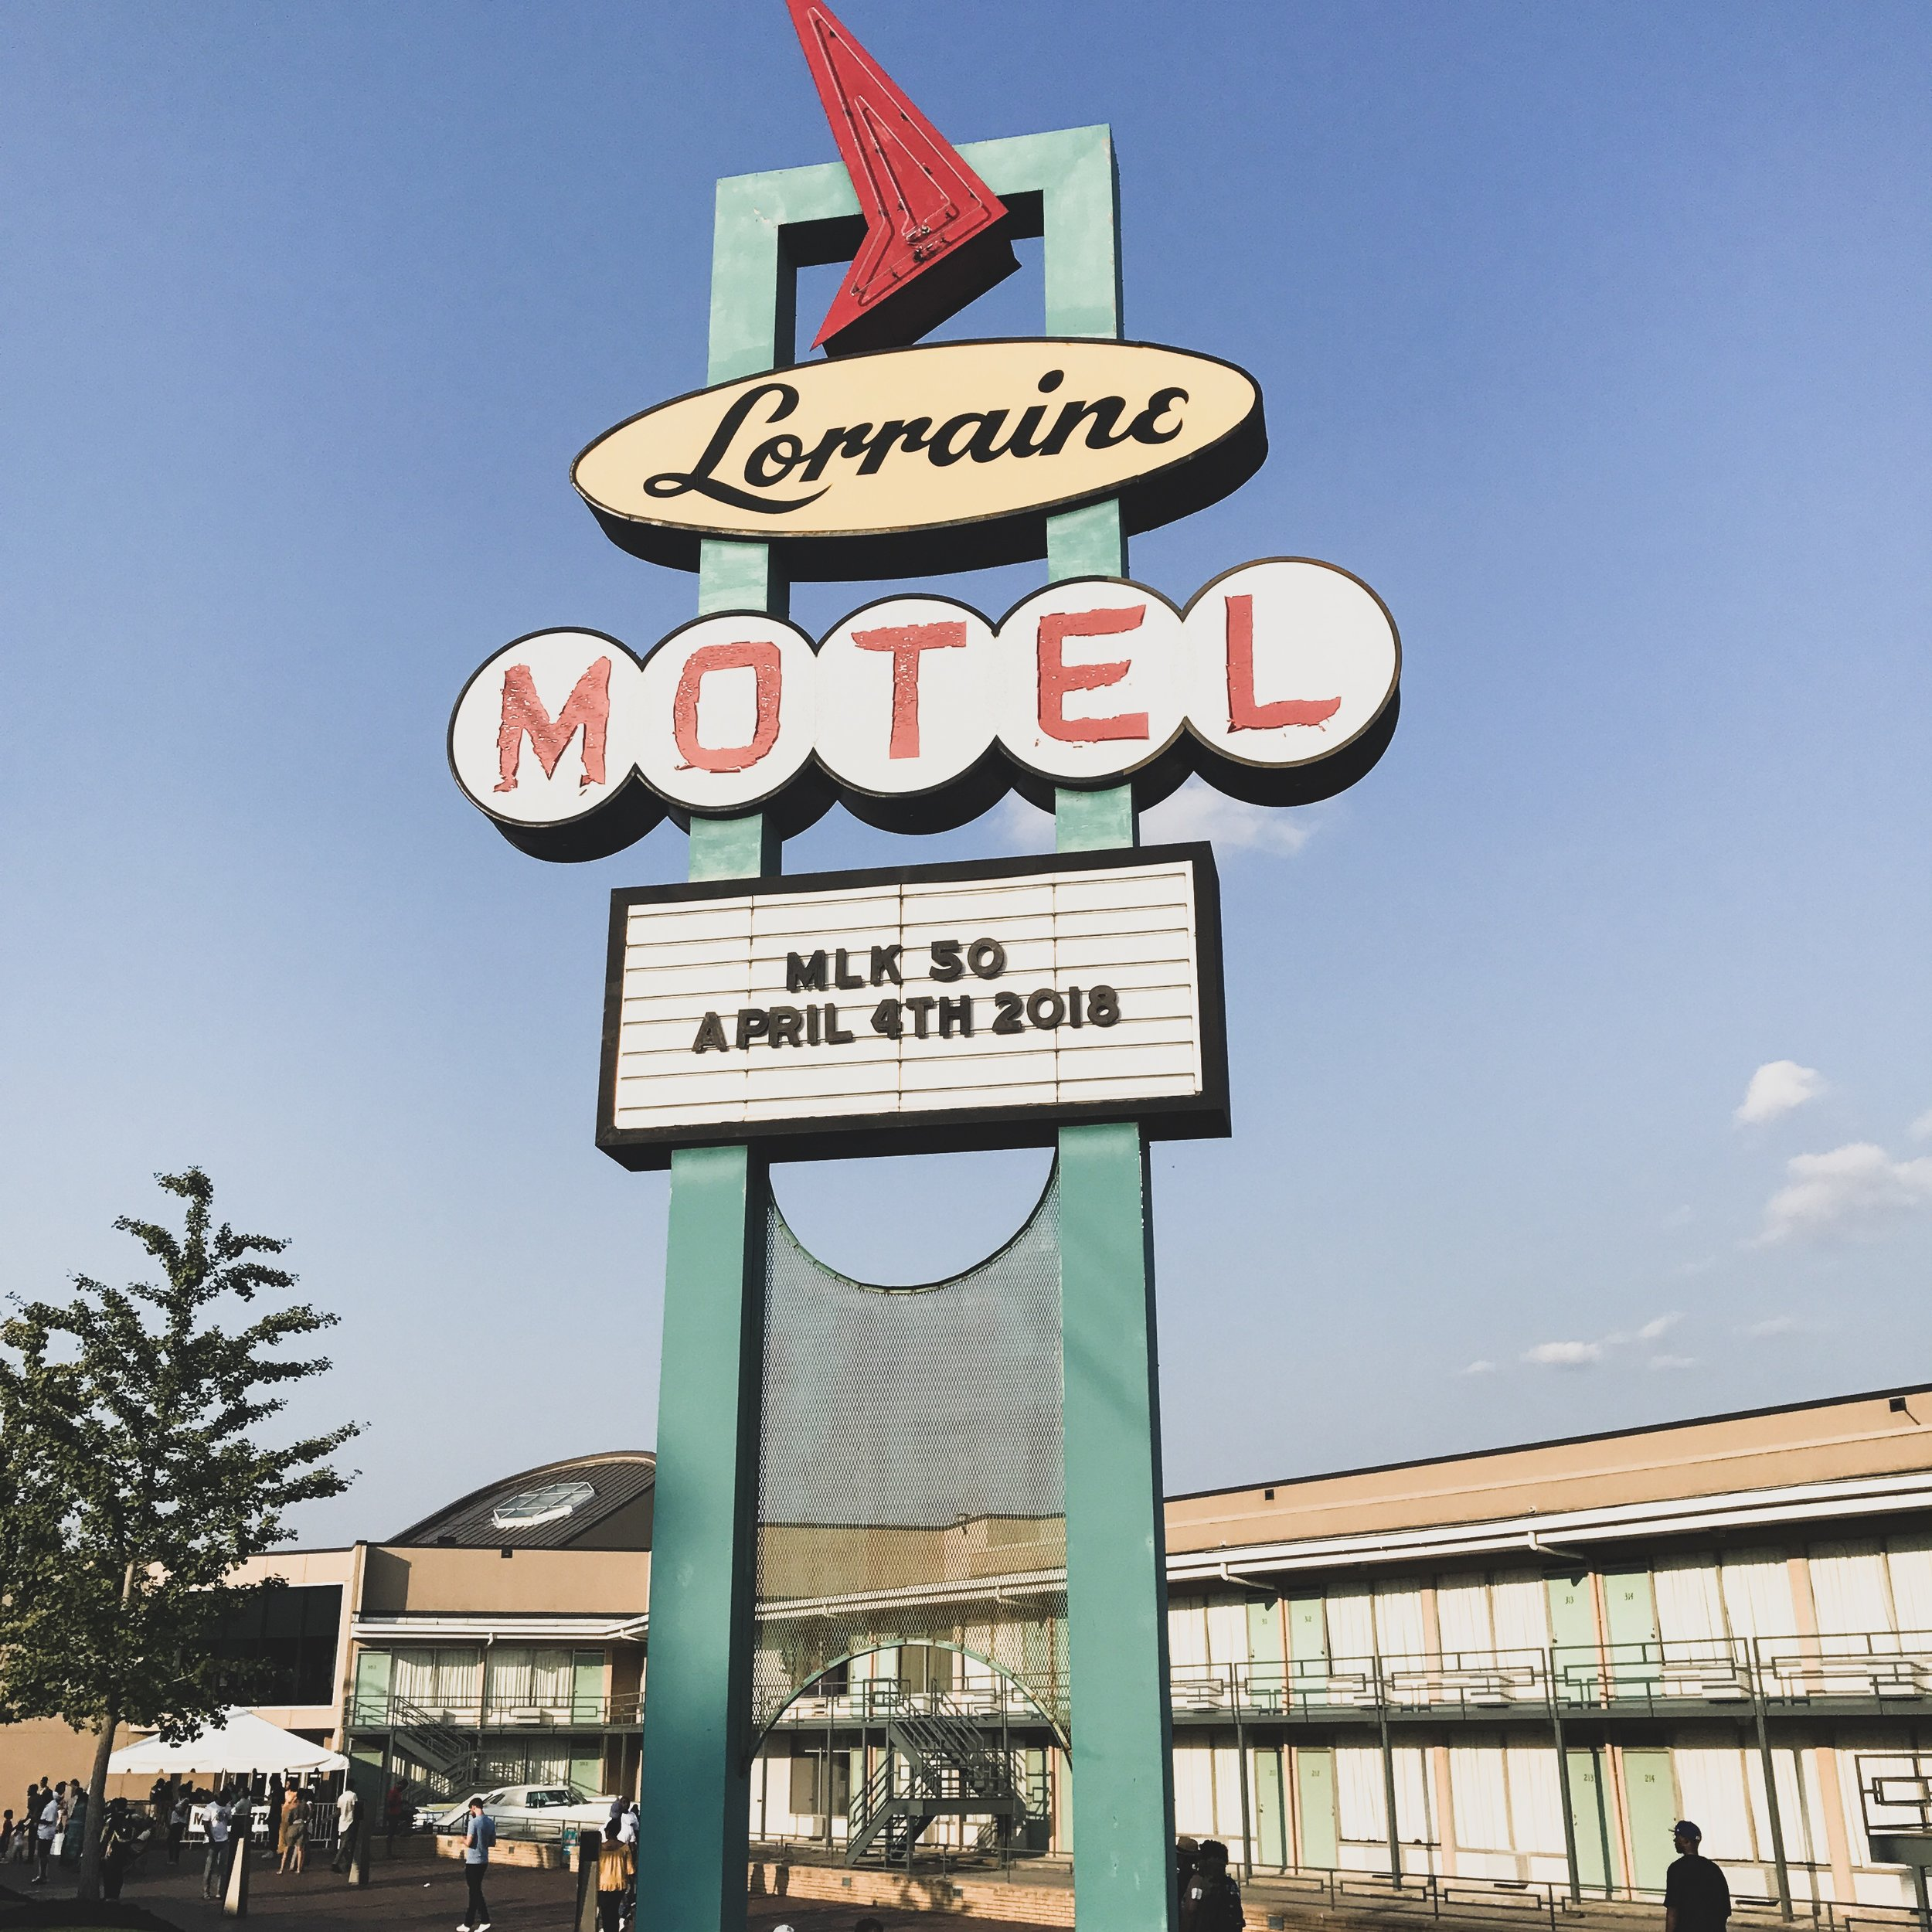 National Civil Rights Museum in memphis, Tennessee. 50th anniversary of Martin Luther King Jr's assassination at the Lorraine Motel.